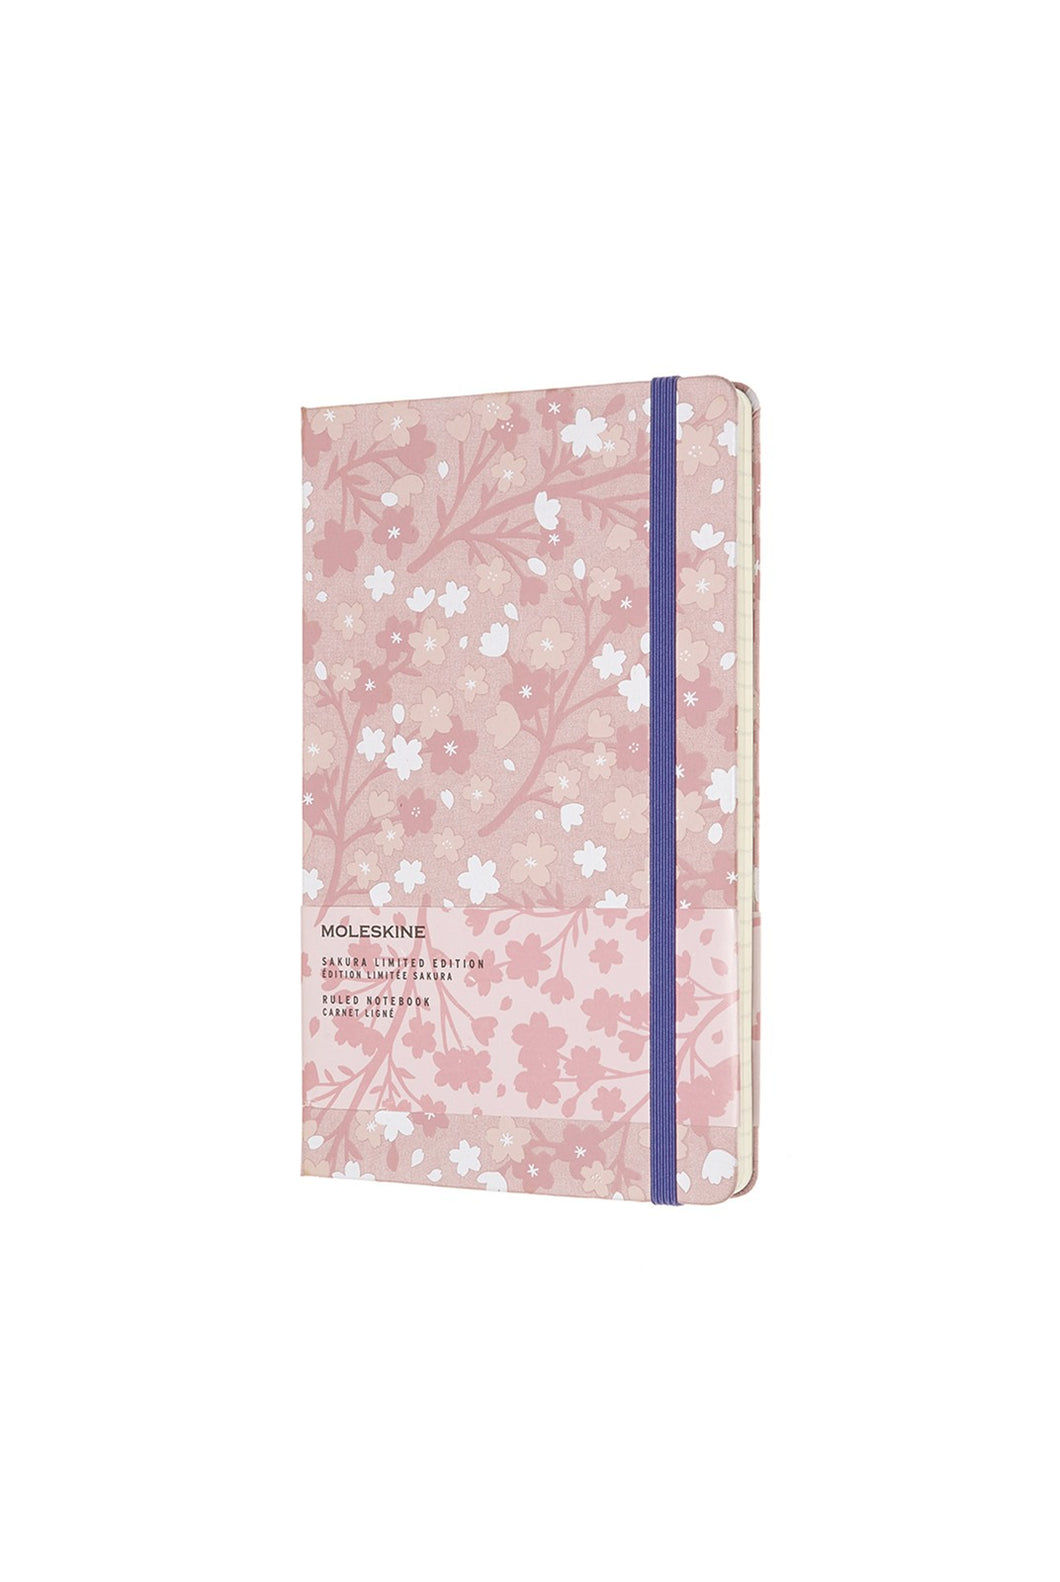 Moleskine - Limited Edition - Sakura Notebook - Ruled - Large (13 x 21cm) - Hard Cover - Oriental Silk Pink